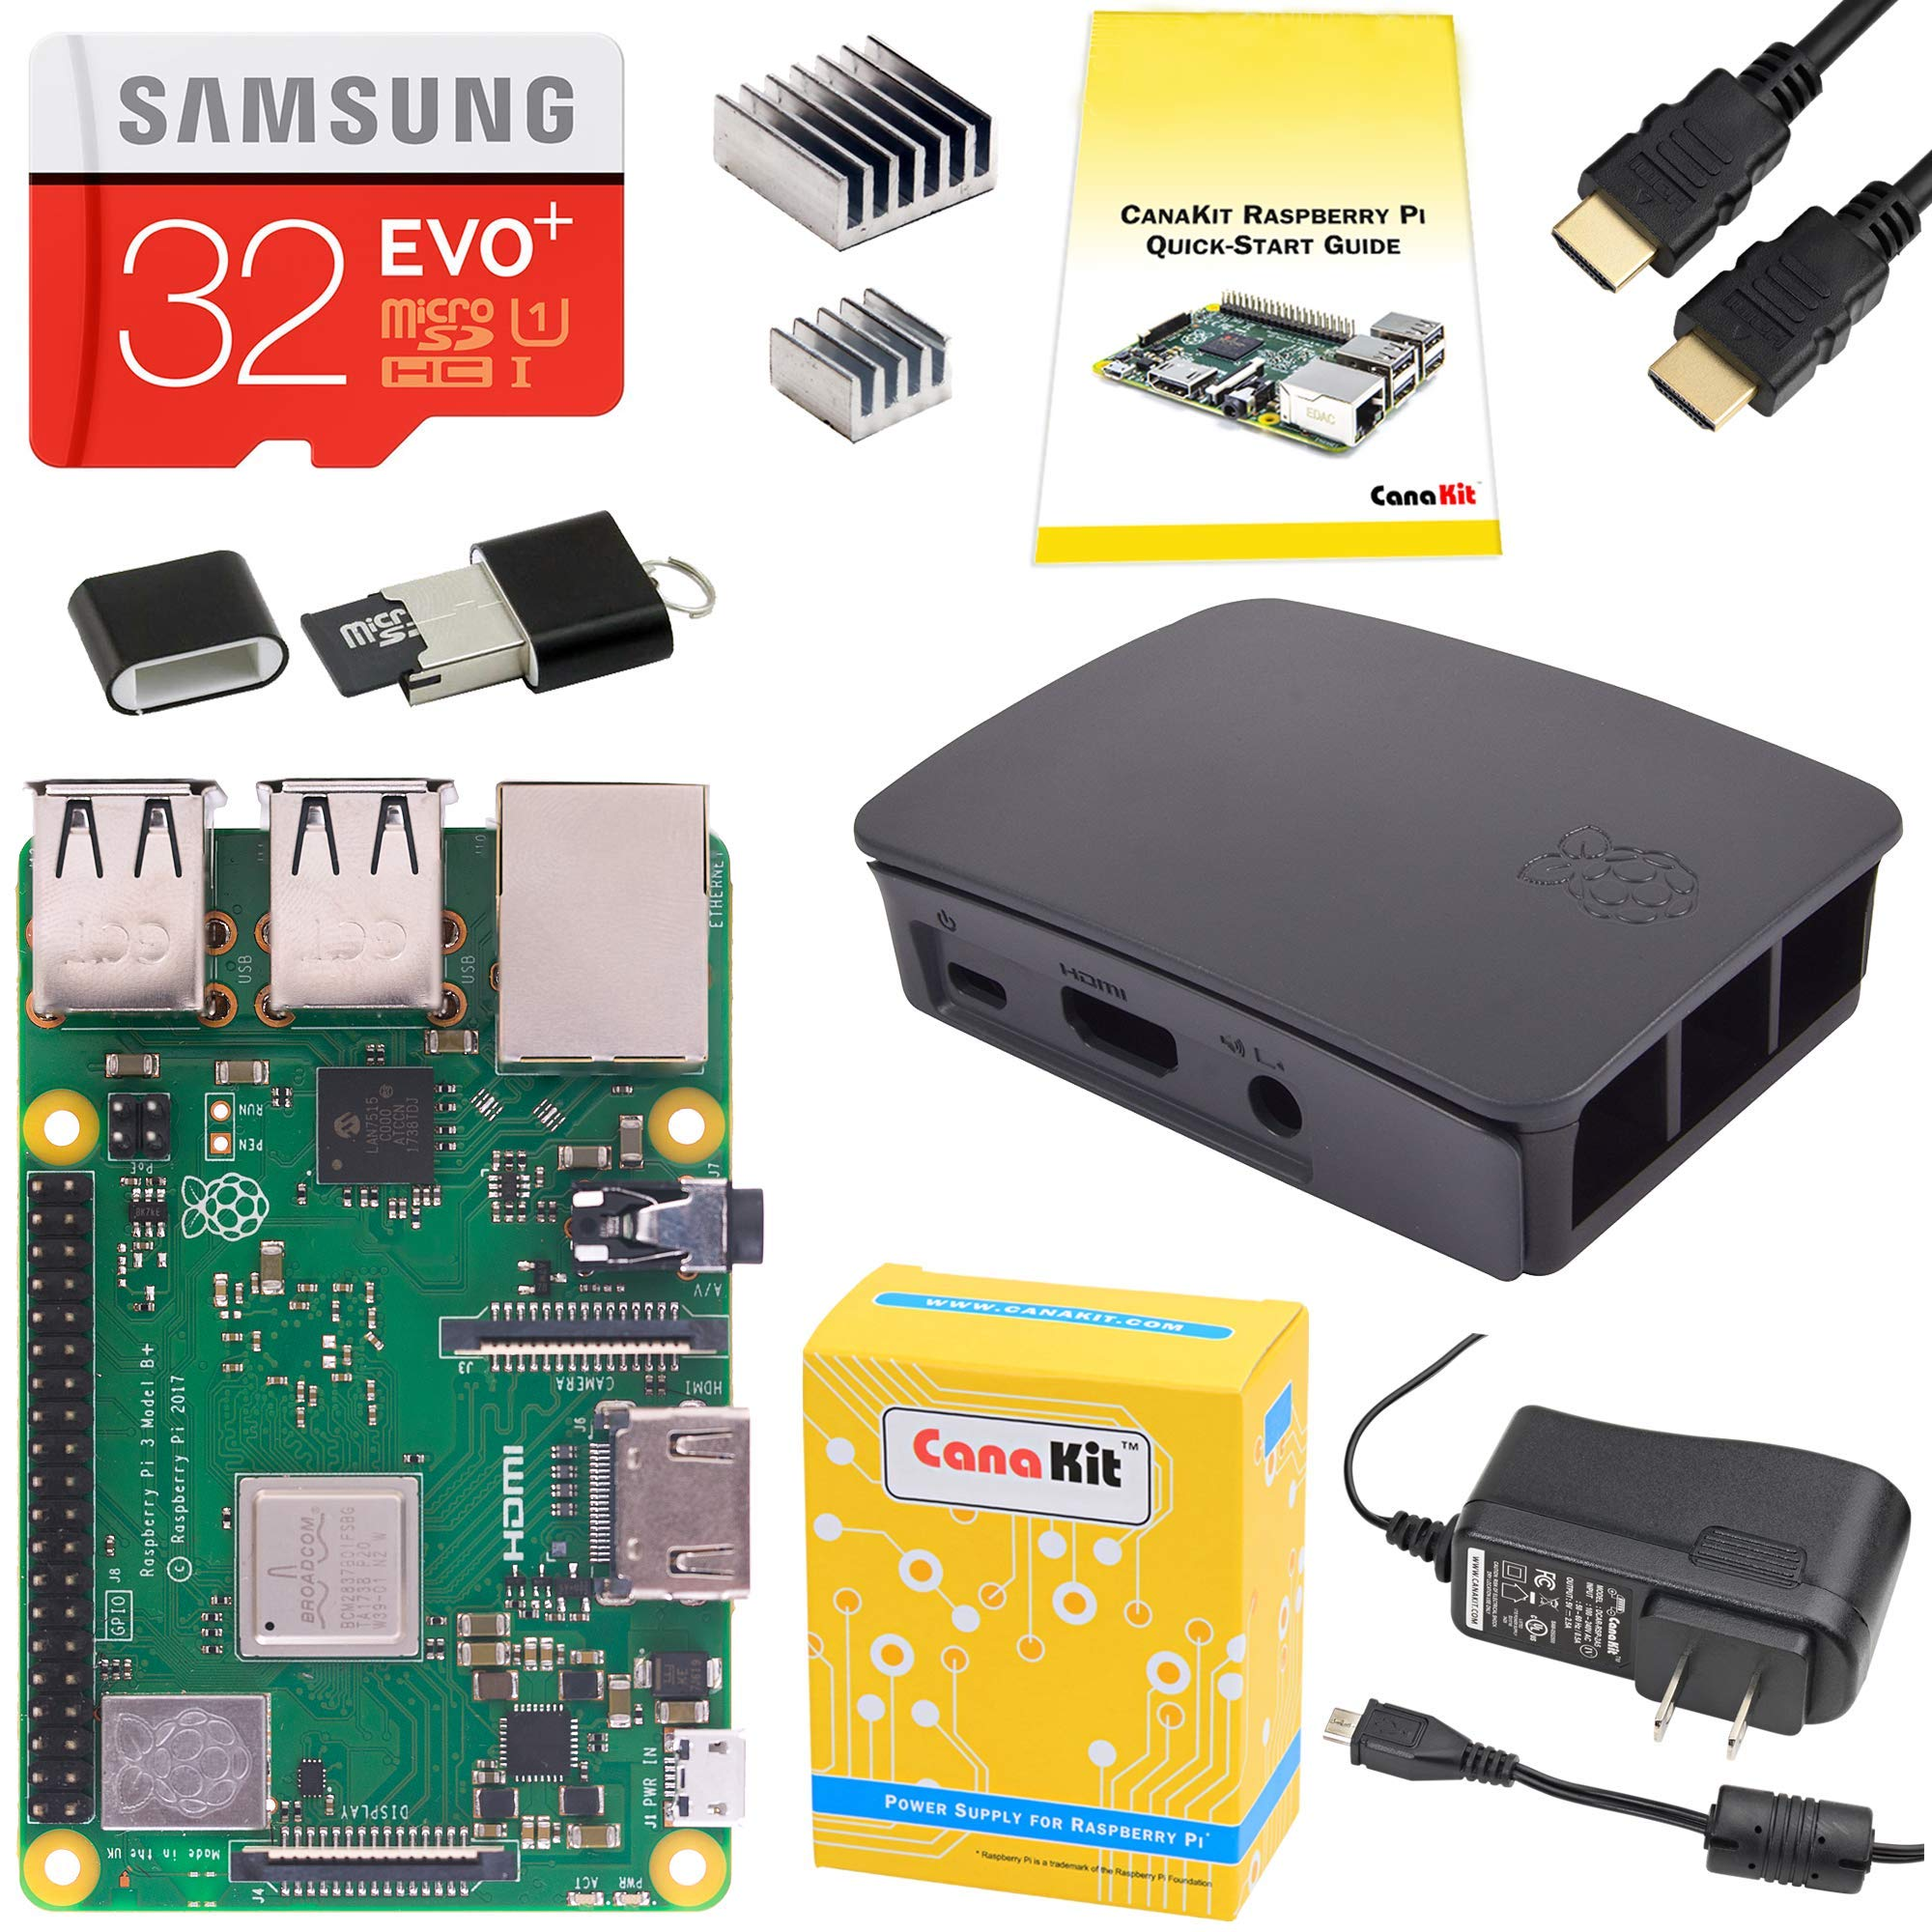 CanaKit Raspberry Pi 3 B+ (B Plus) Starter Kit (32 GB EVO+ Edition, Official Black Case)